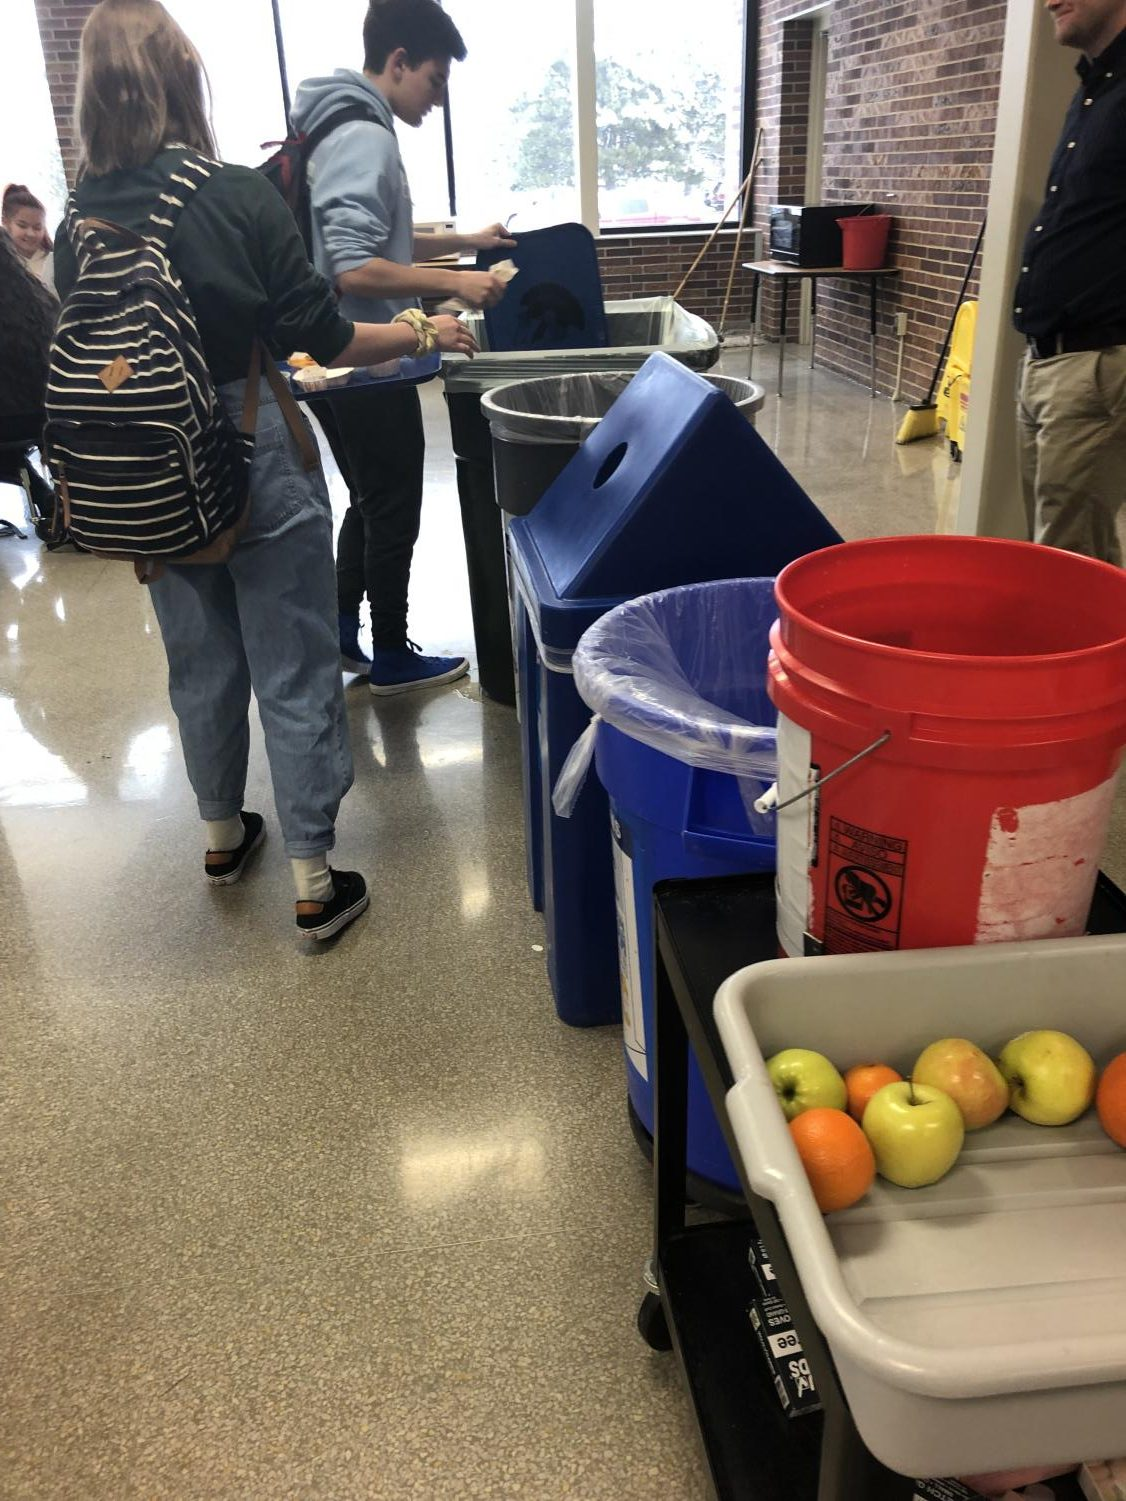 Students line up to test out the new procedure for lunch waste.  This method is meant to help our environment, beginning with schools within the LPS district.